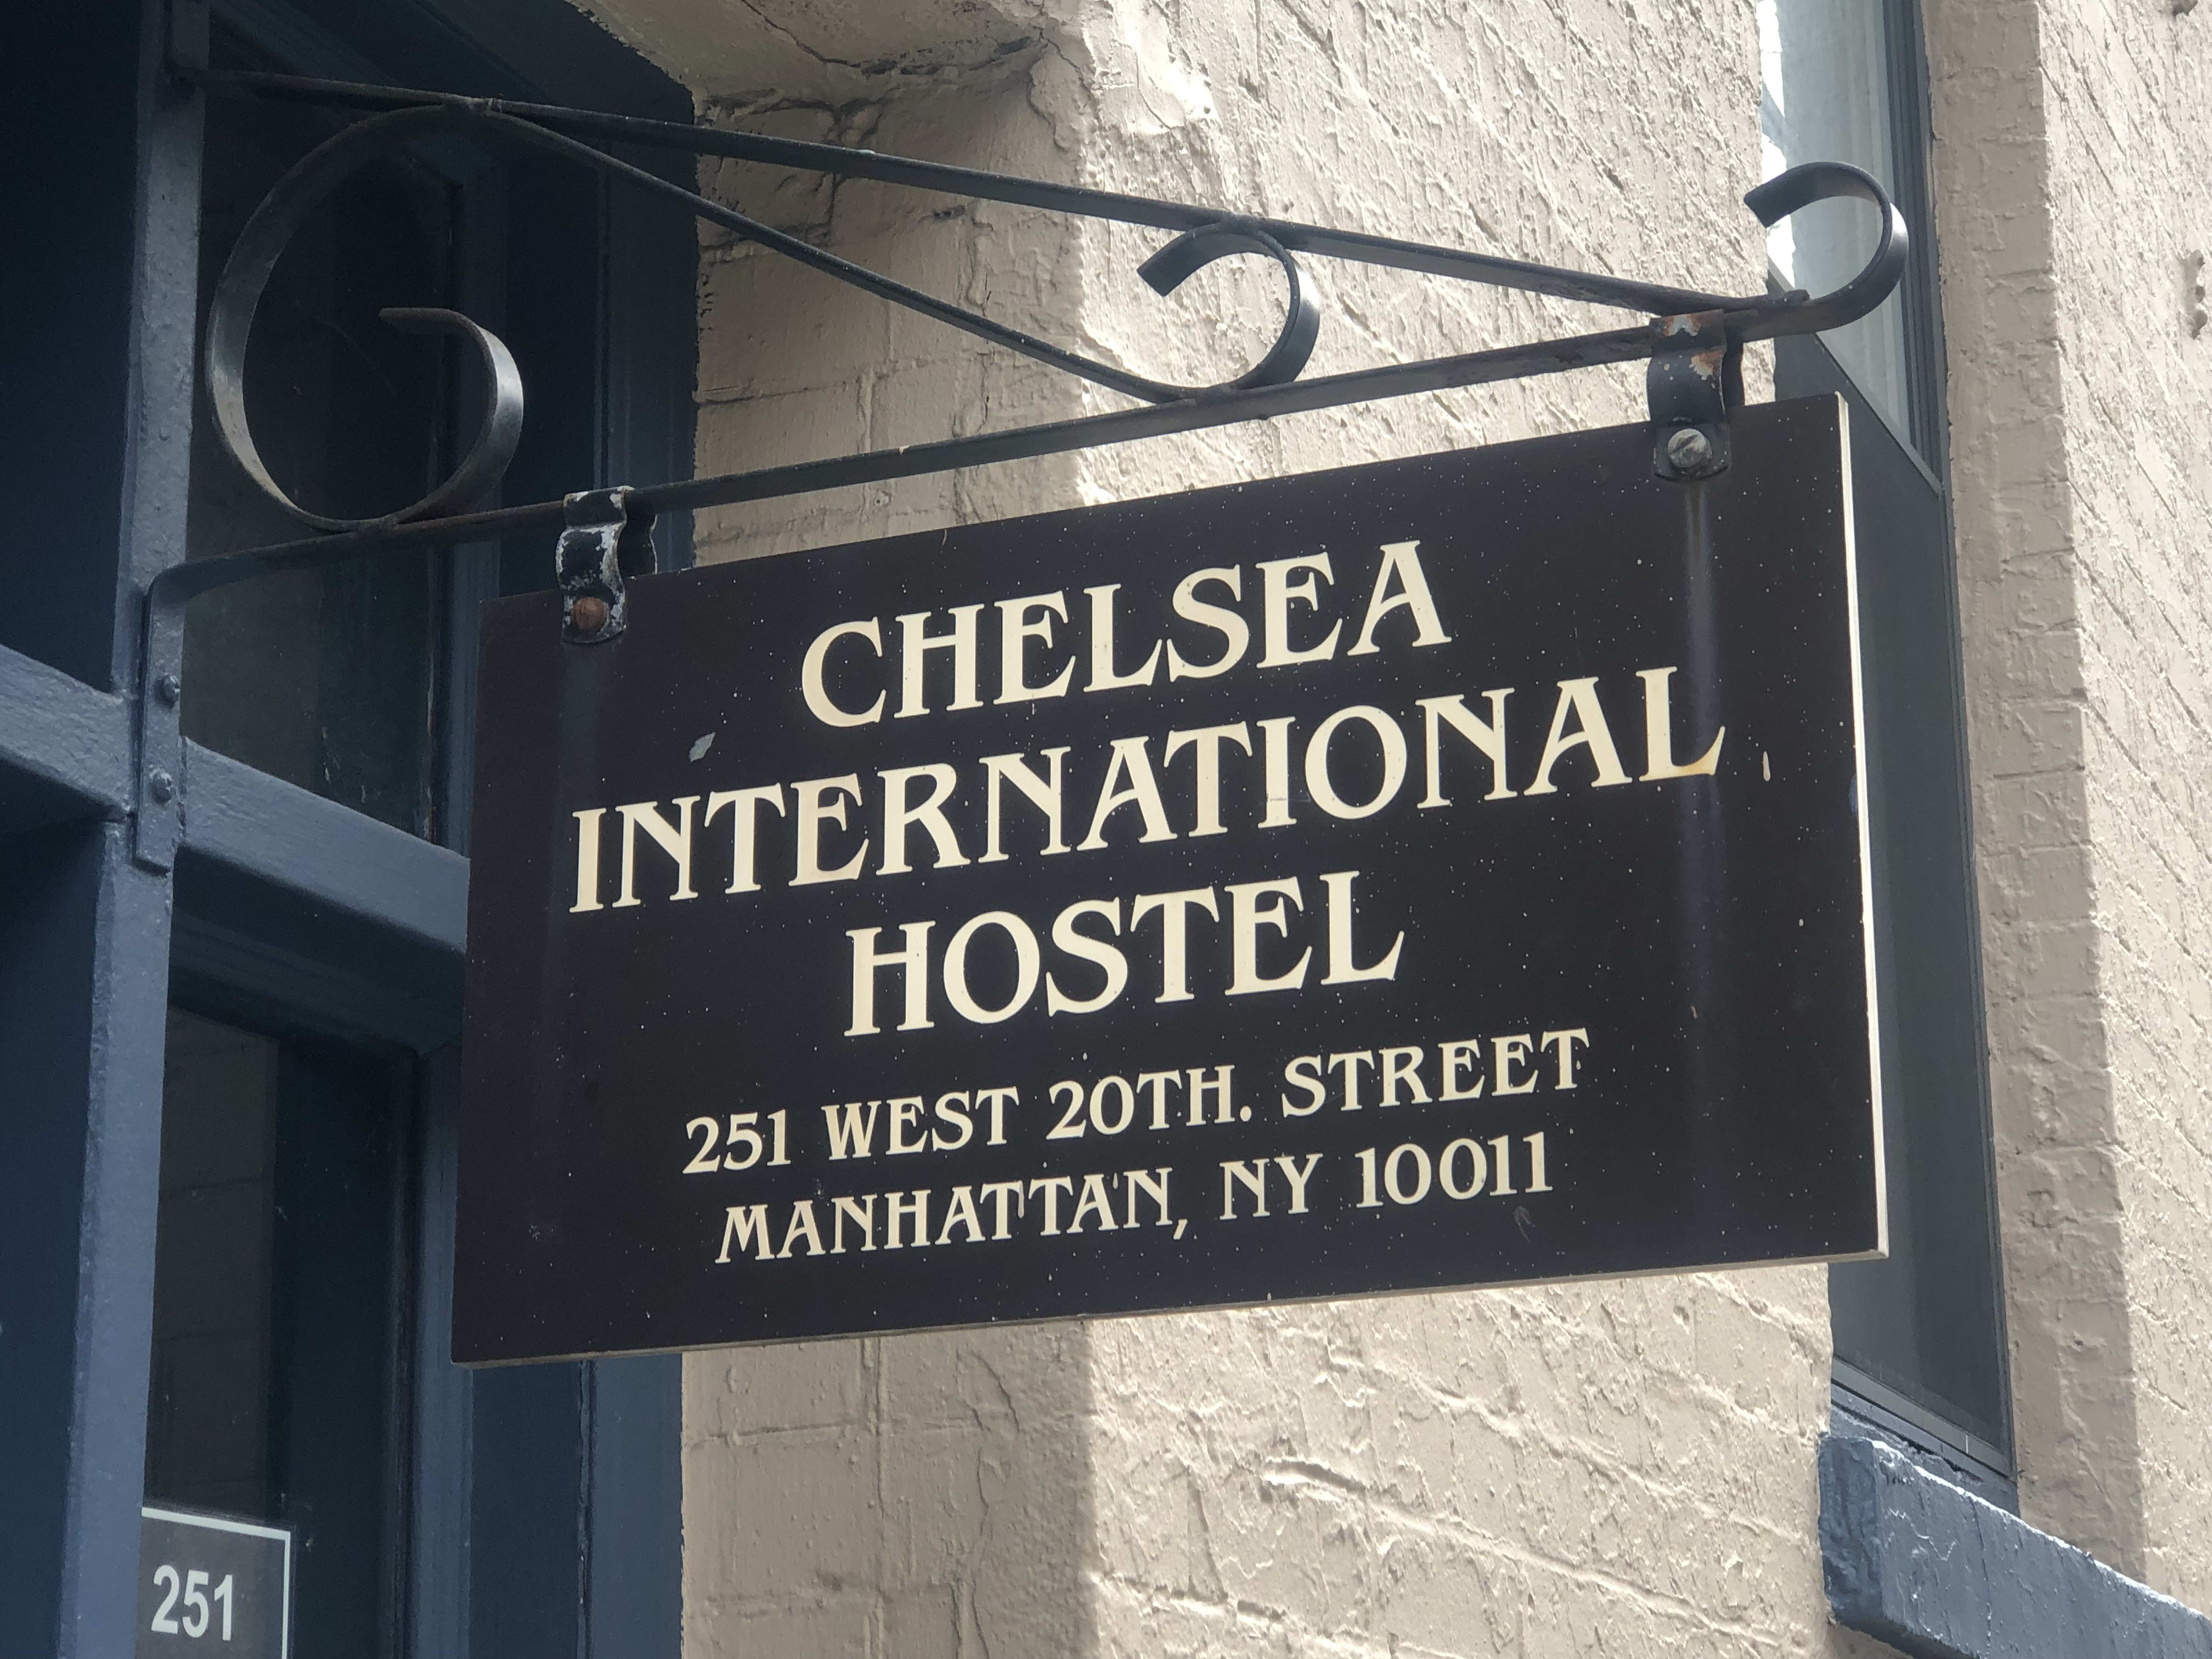 HOSTEL - Chelsea International Hostel